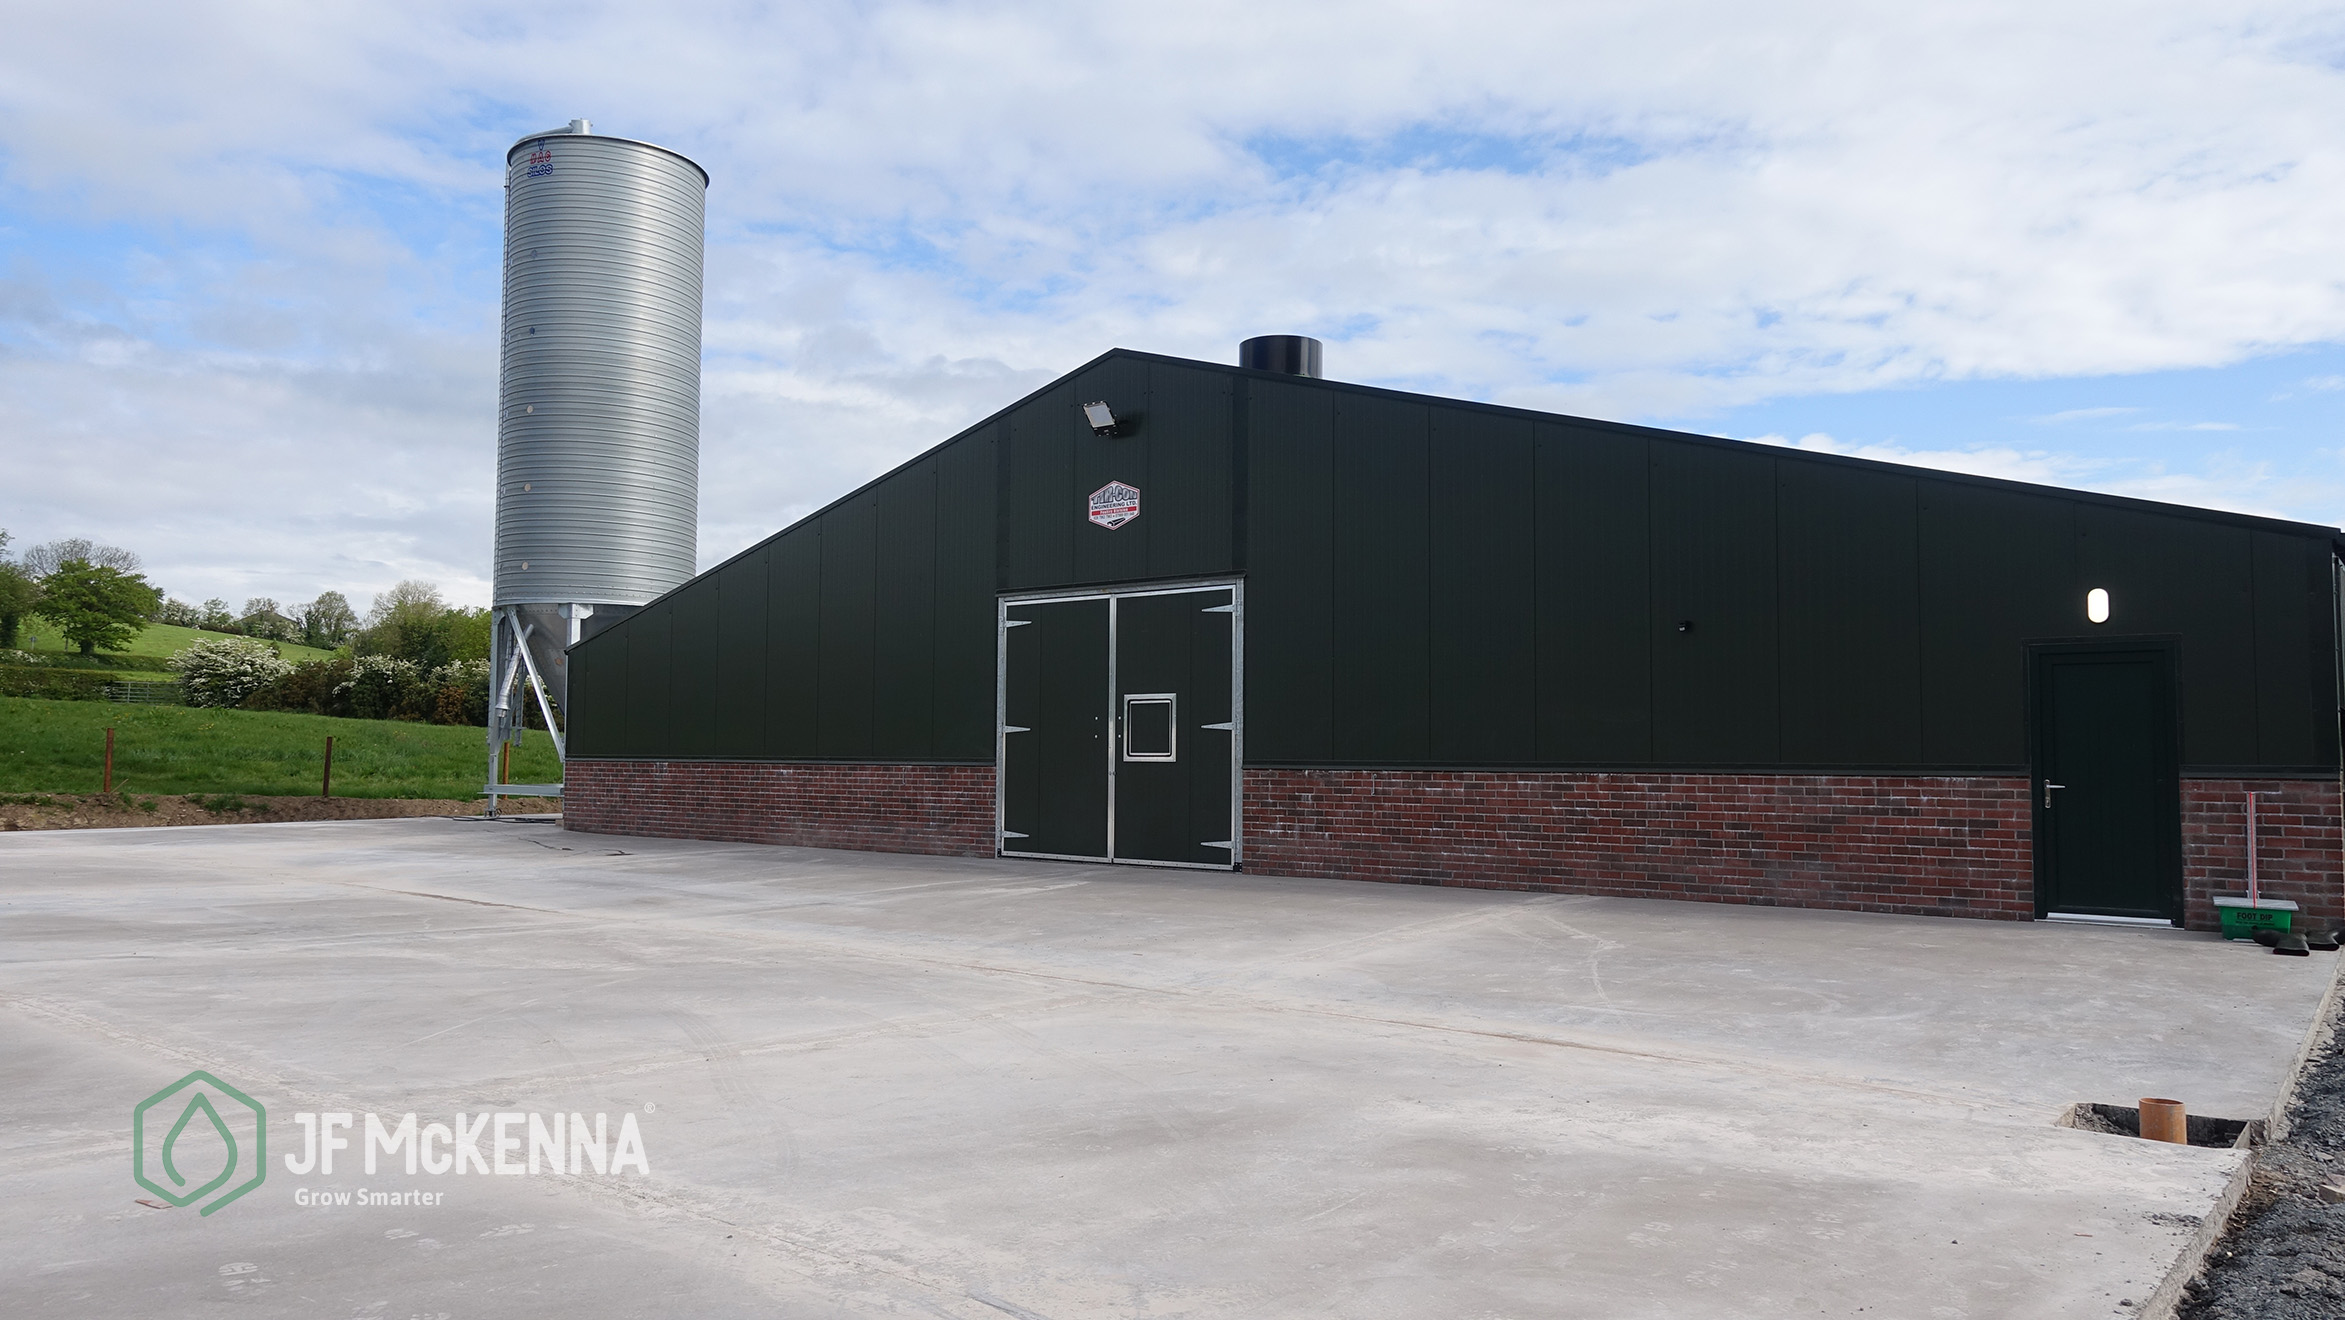 Broiler Poultry Project  Republic of Ireland  In 2019, JF McKenna completed work on this 50,000 broiler unit in the republic of Ireland.